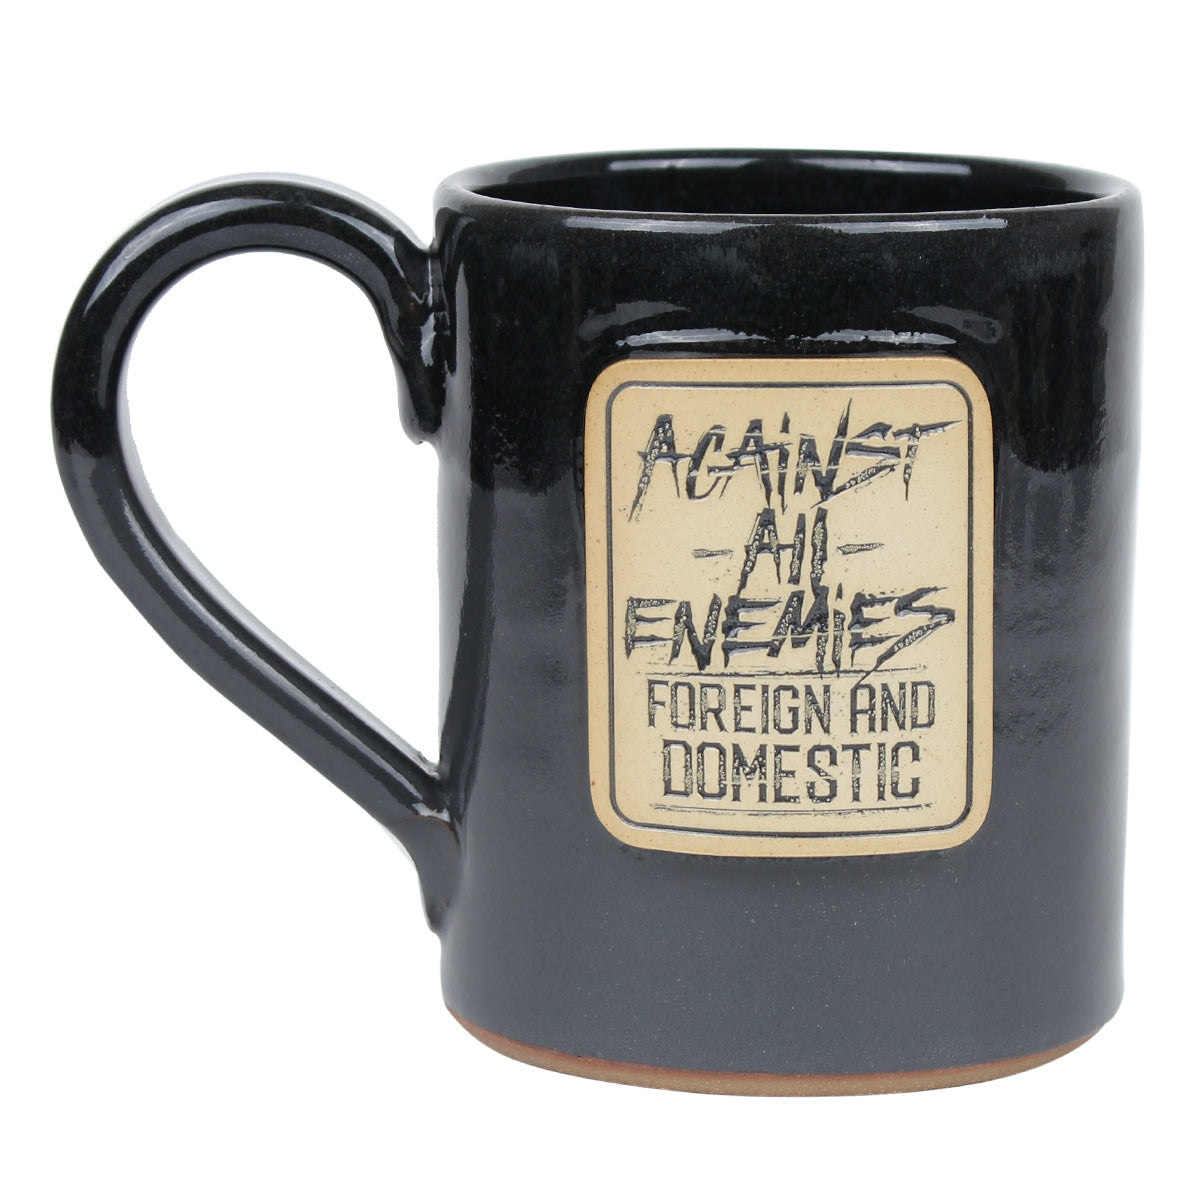 Against All Enemies - 14oz Coffee Mug - Black - Coffee Mug - Pipe Hitters Union